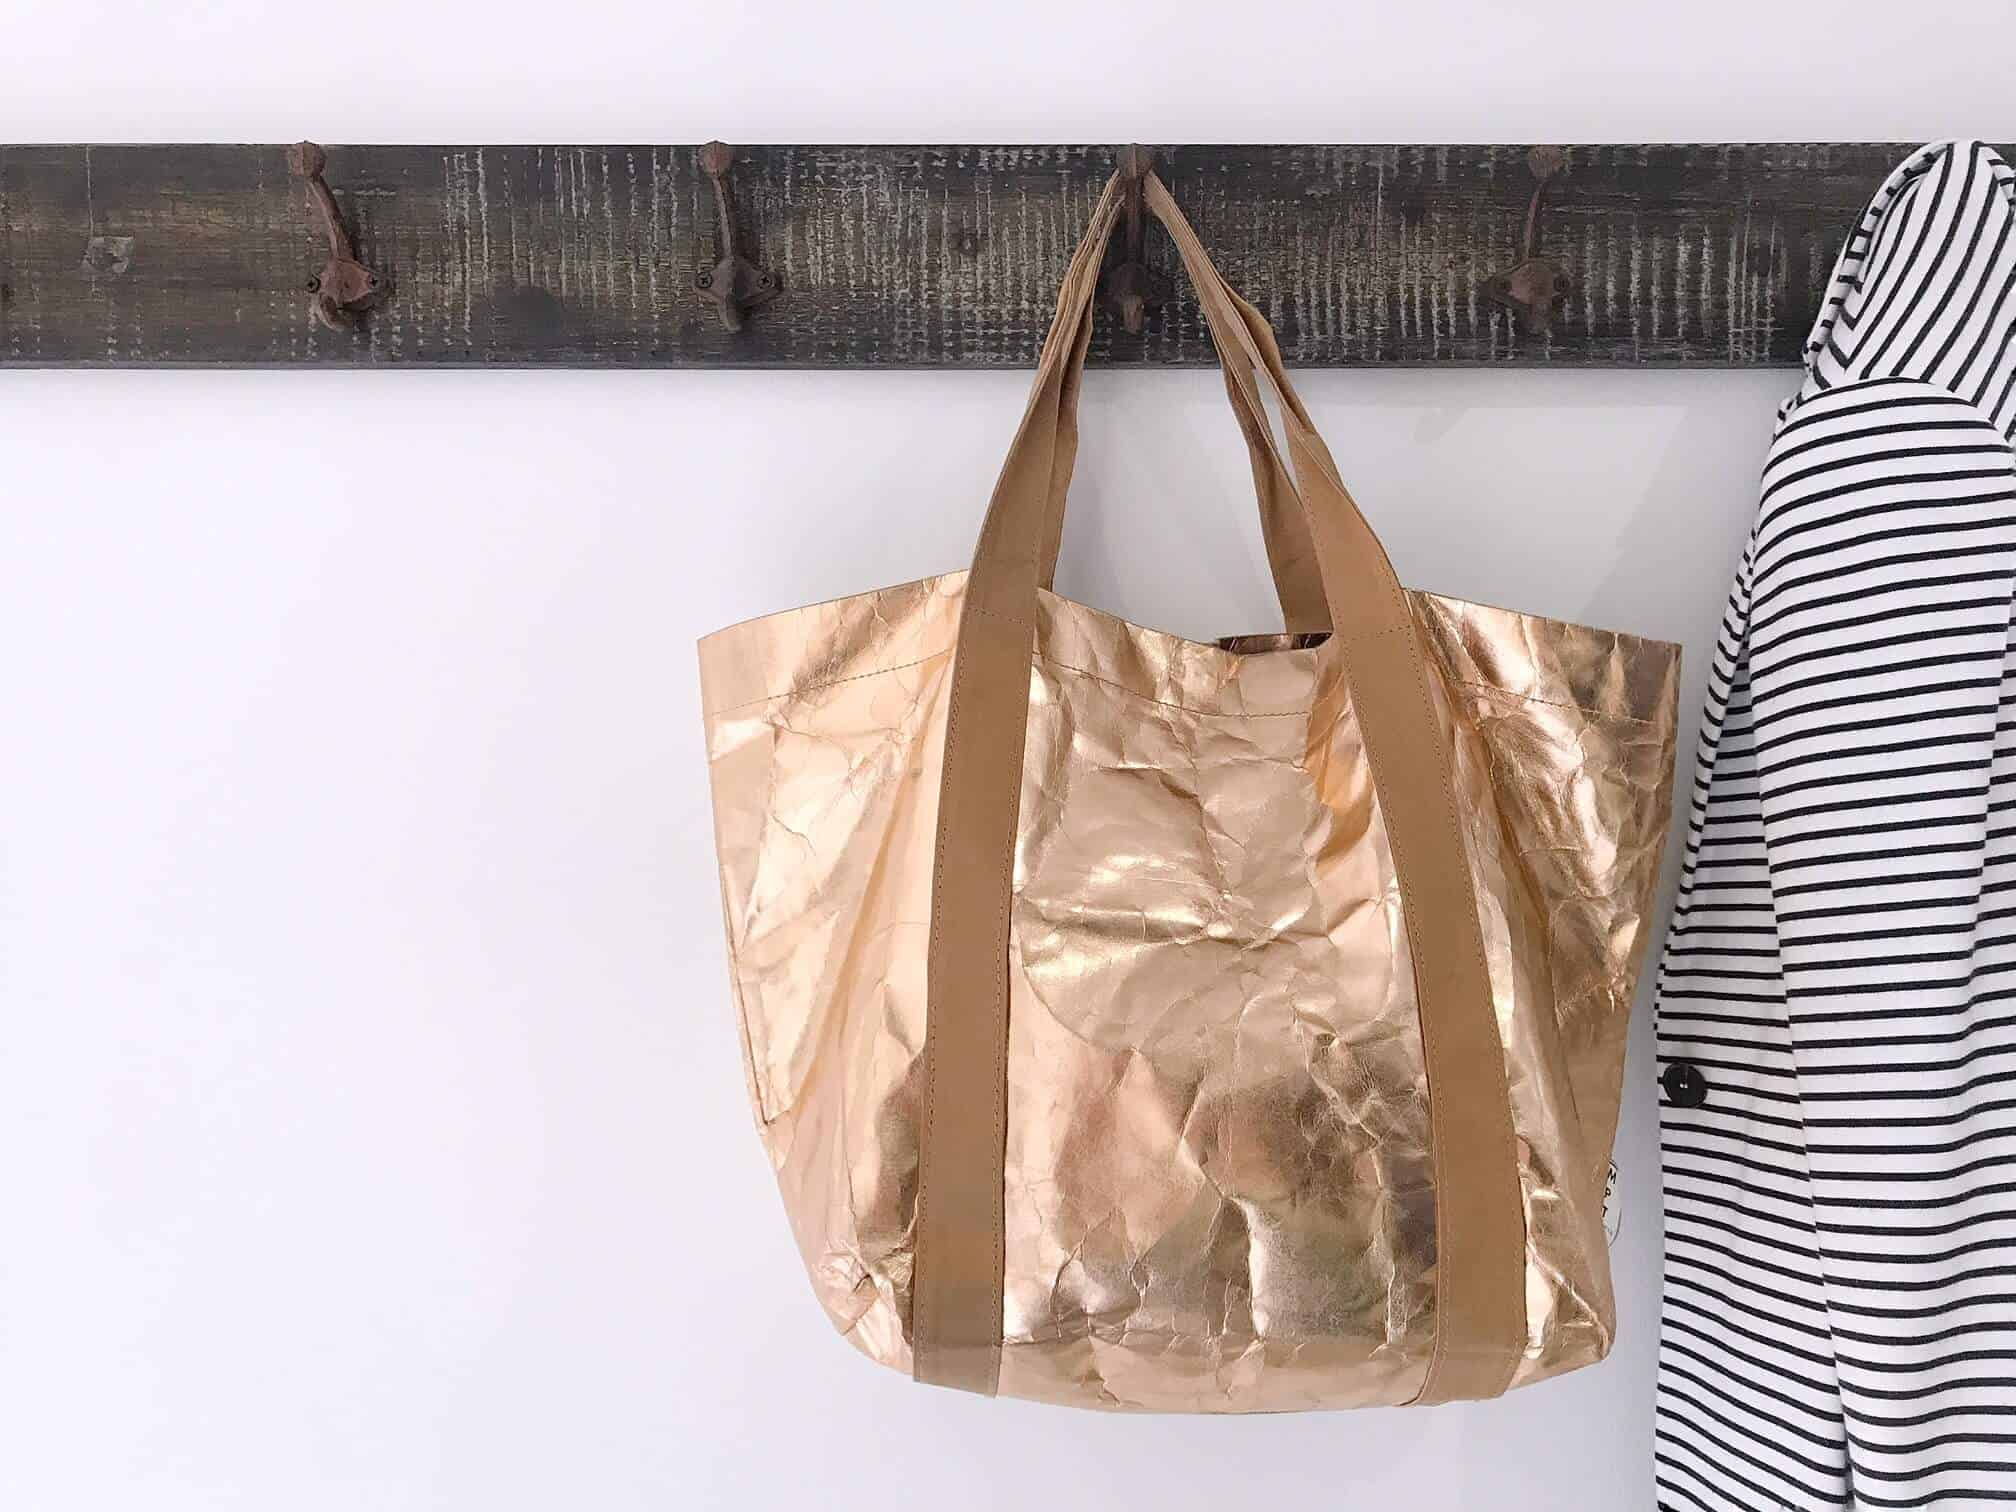 A Sustainable Tote Bag, That's Made of Paper, and Washable! Introducing My Paper Tote